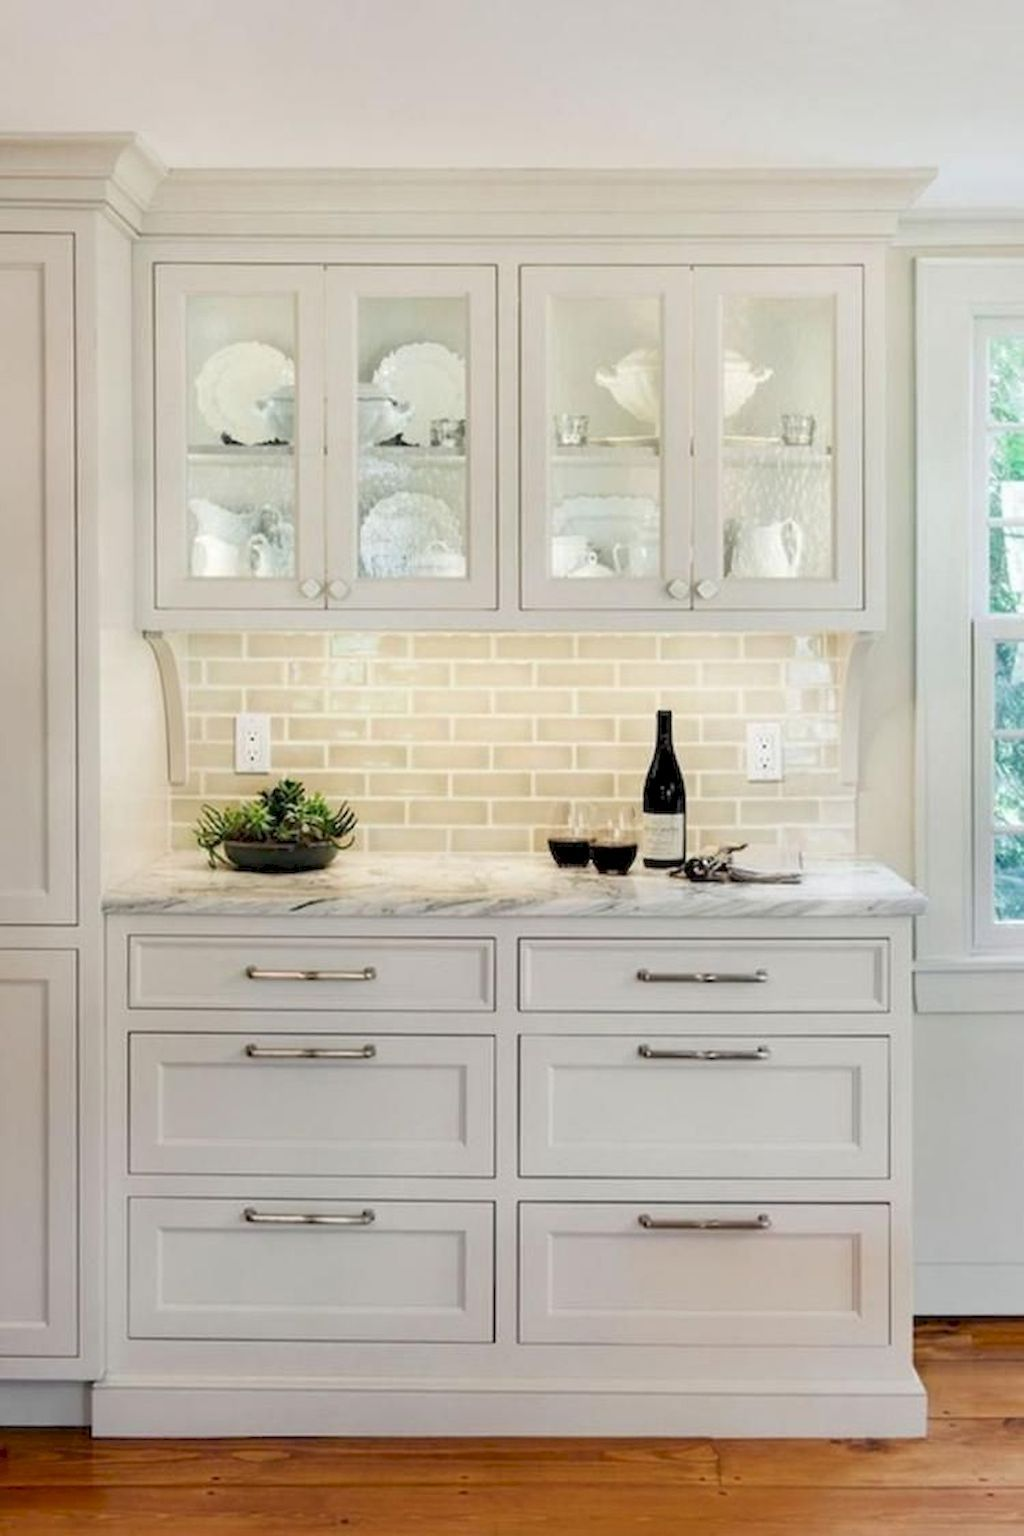 Farmhouse kitchen cabinet ideas to make your kitchen design more